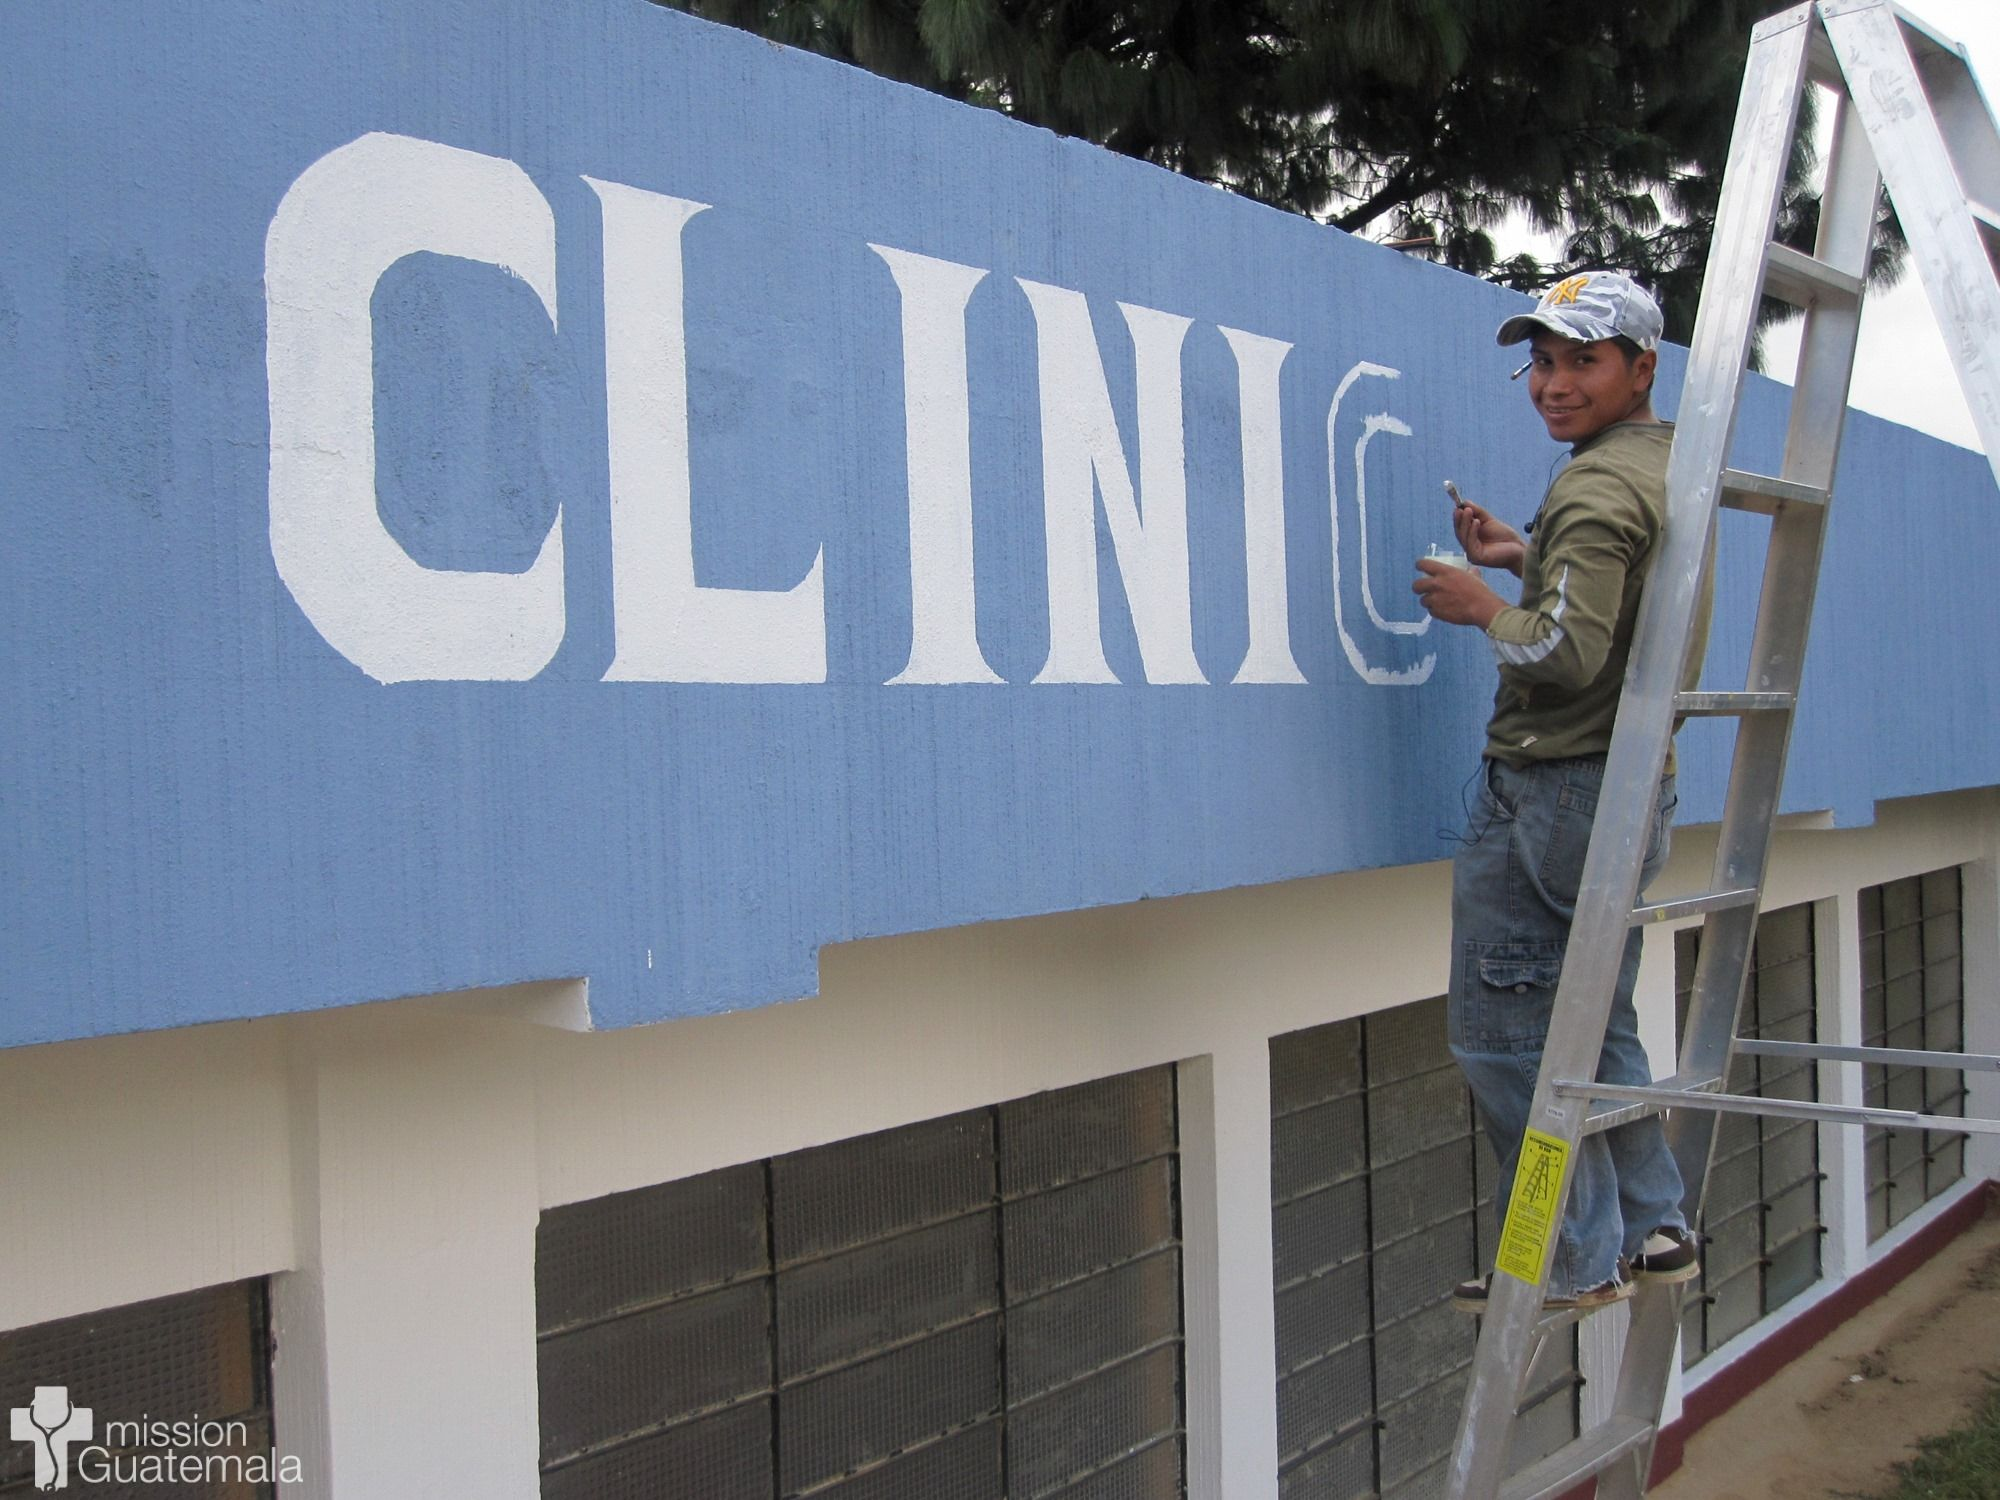 Ten Years of Providing Healthcare in Guatemala!